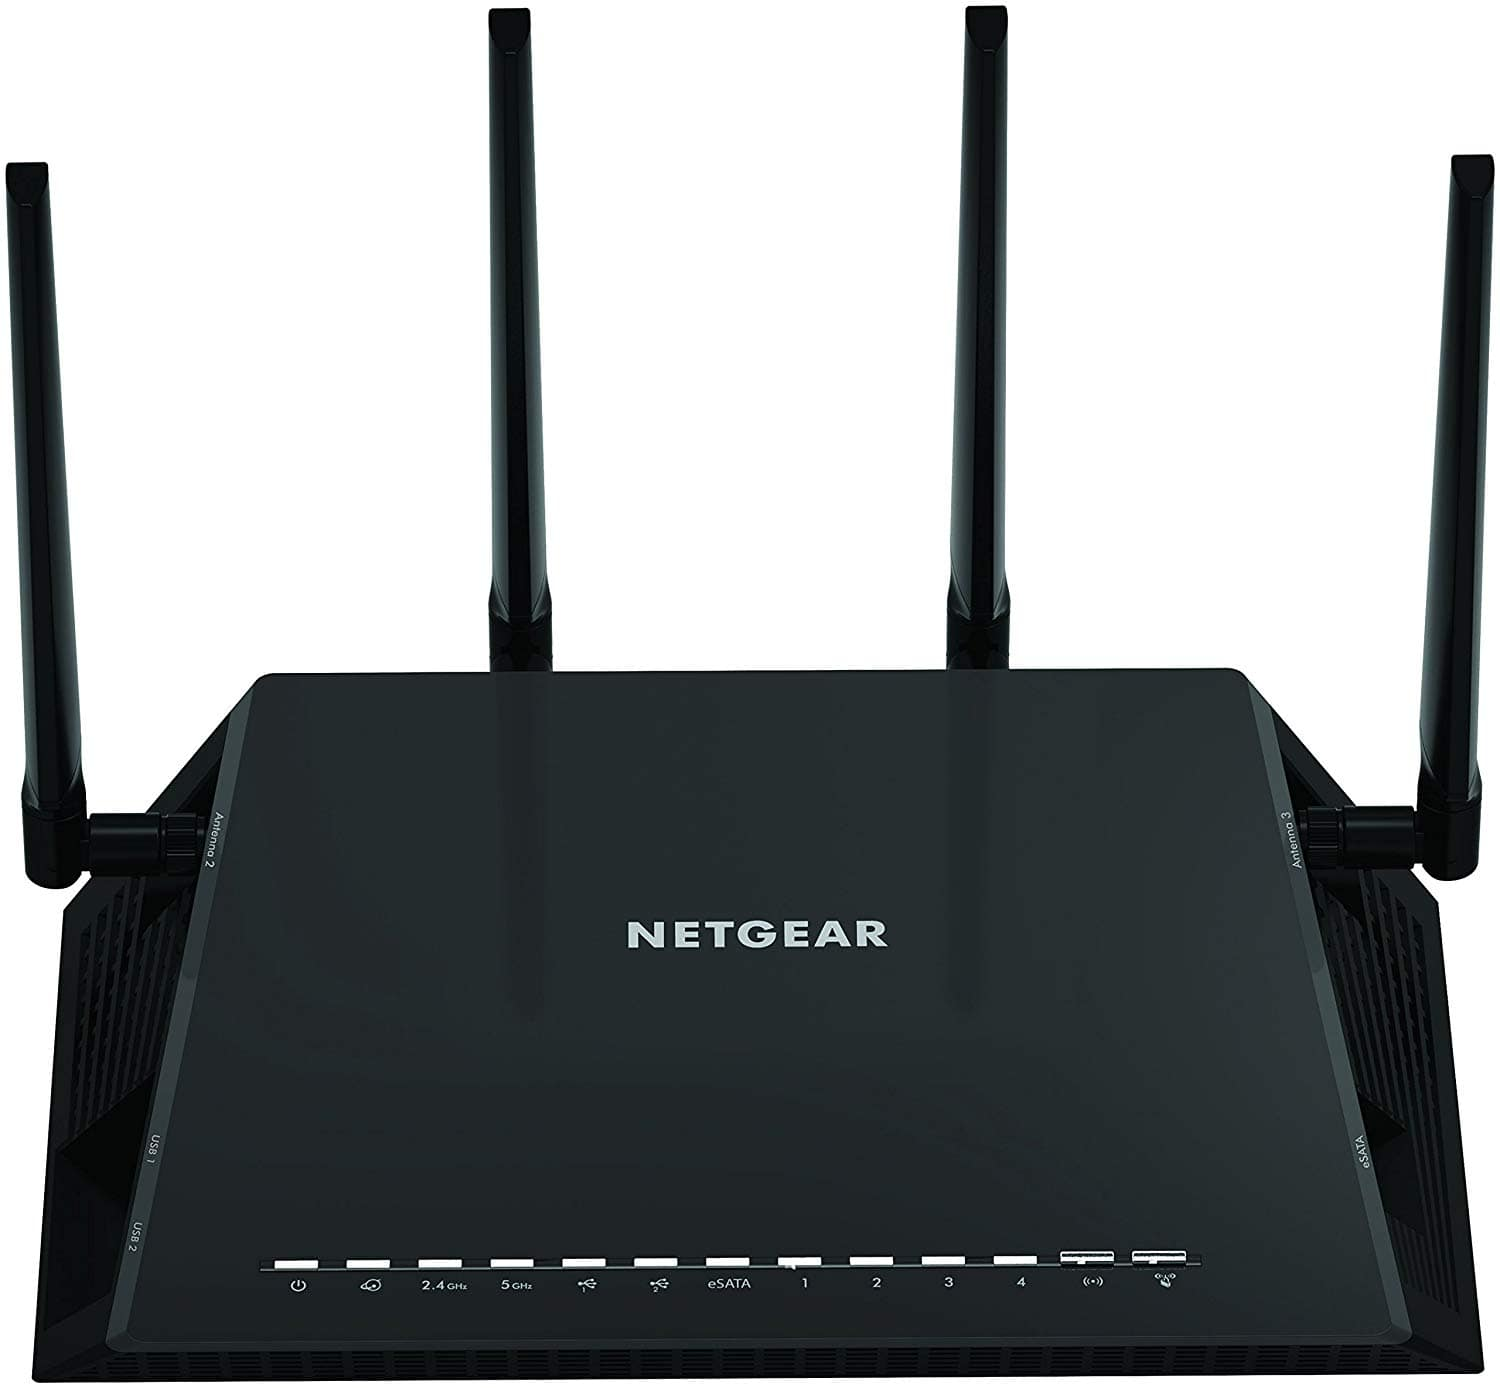 Netgear Nighthawk X4S AC2600 Dual-Band Gigabit Router - Page